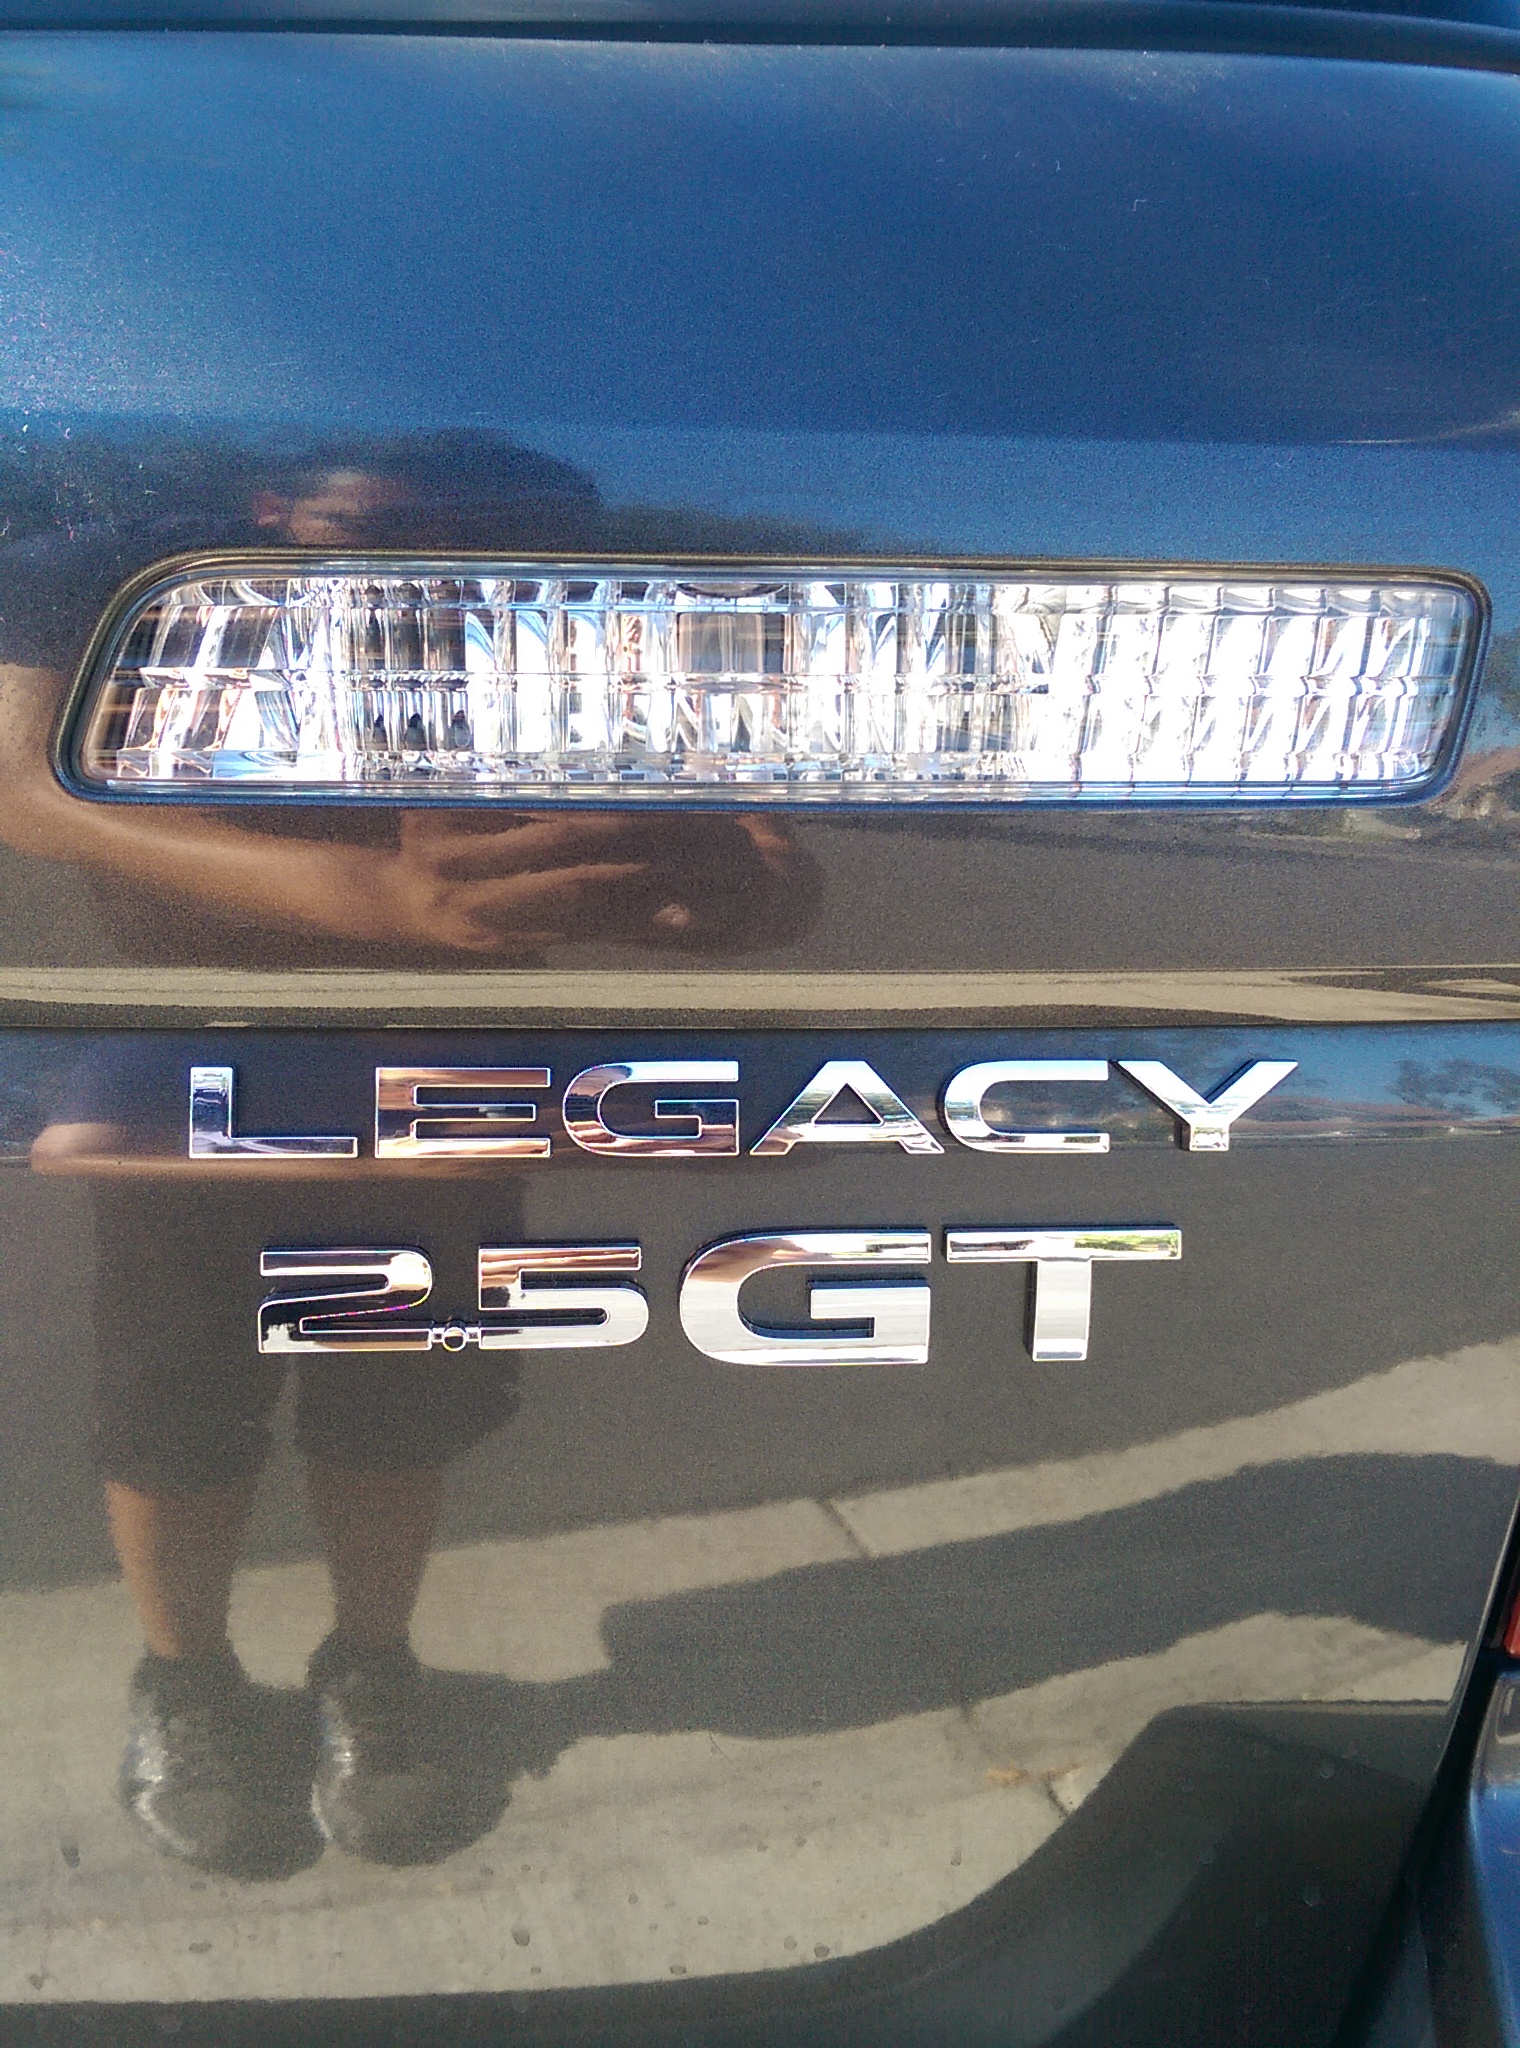 The car next door subaru legacy now with badges and r2d2 for Ebay motors com cars and trucks